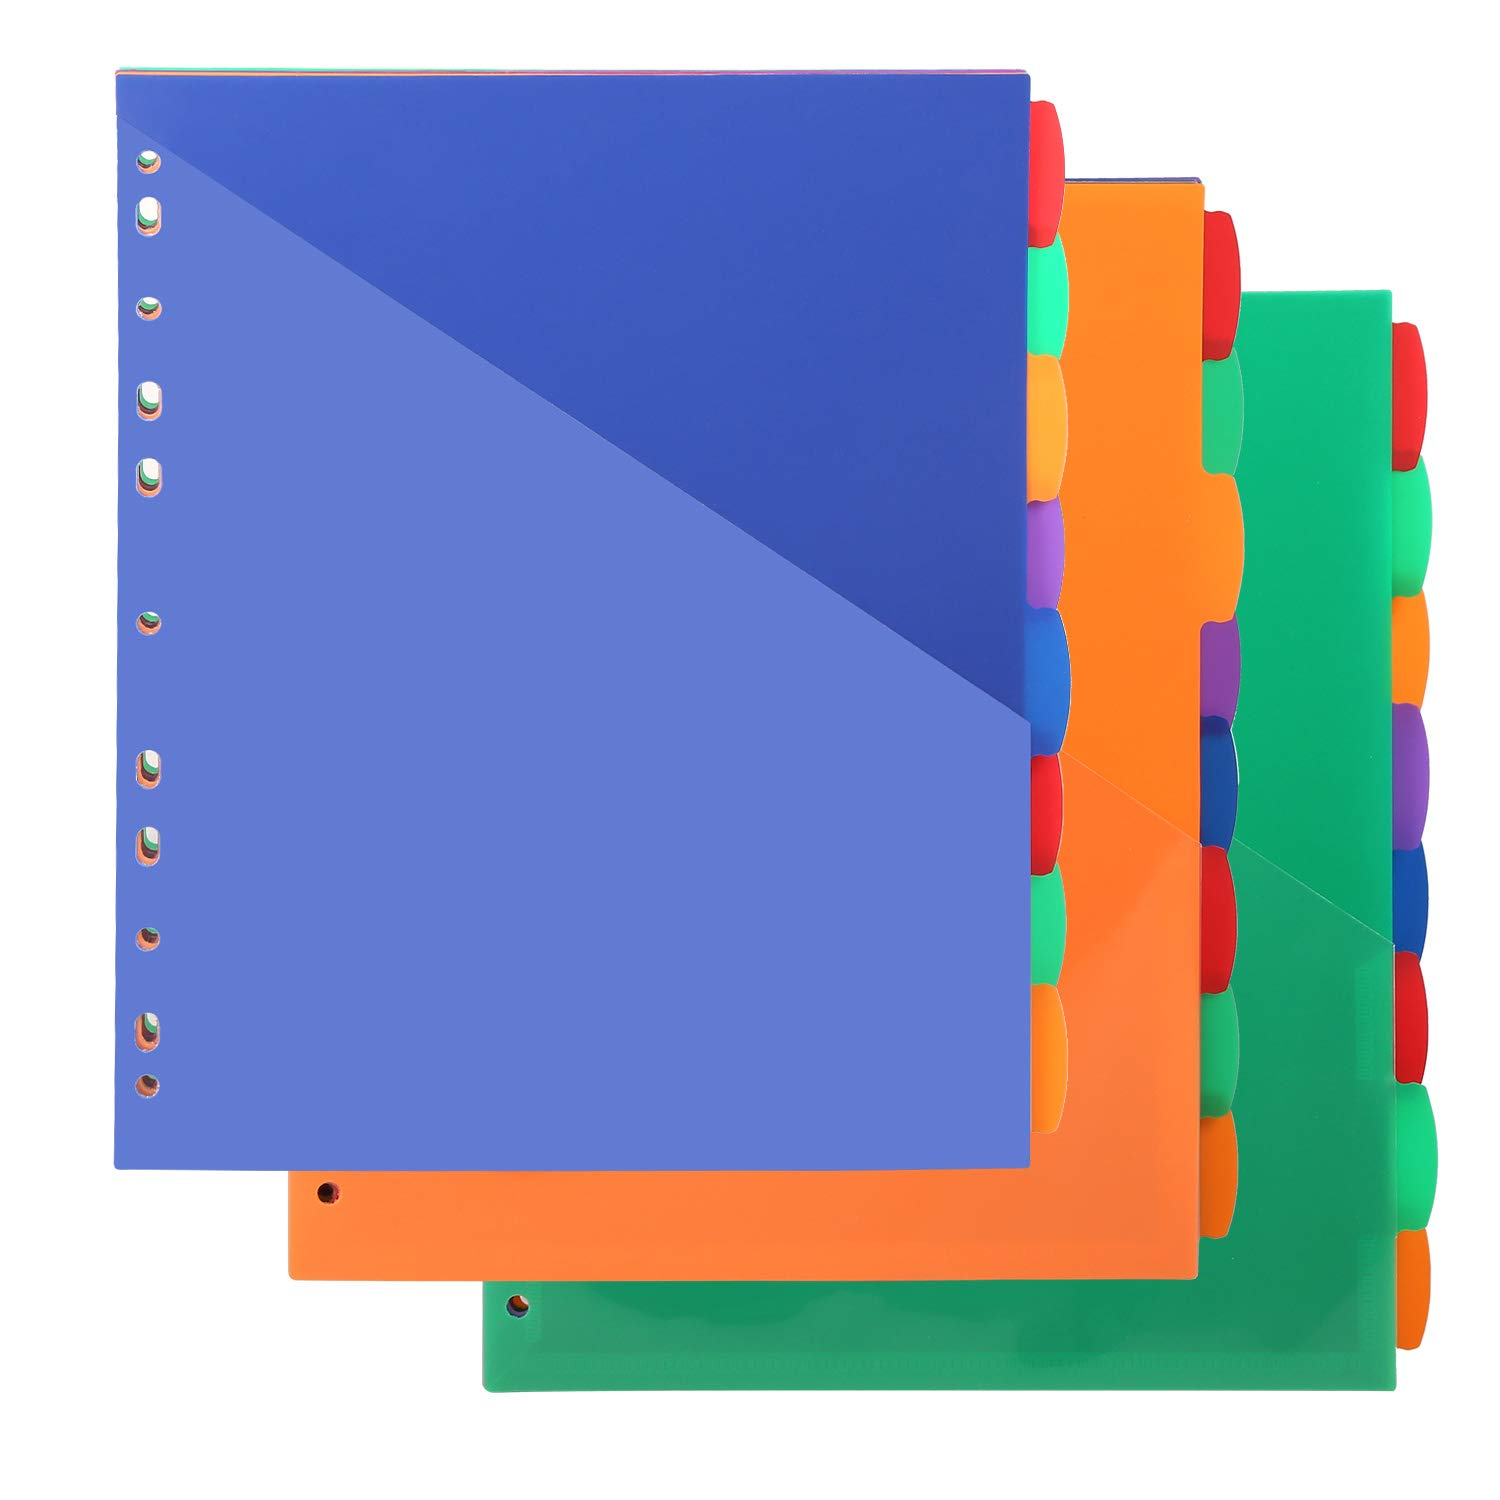 Plastic 8-Tab Binders Dividers with Pockets, Insertable Tab Dividers for 3-Ring Binders, Multi-Color Index Dividers, Pack of 3 Sets